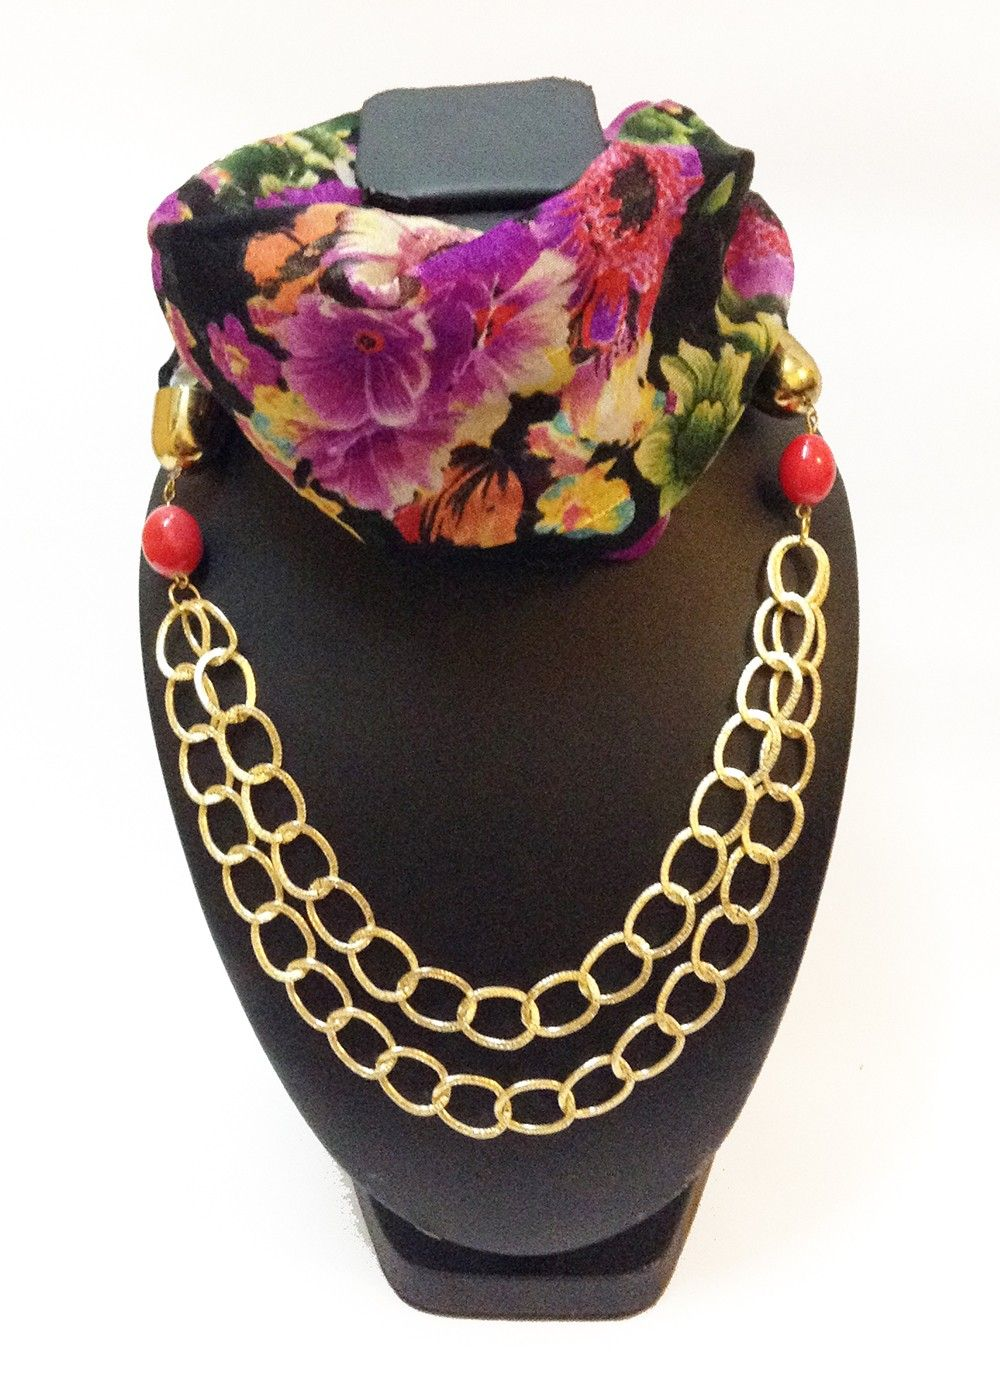 Raw Silk Black Floral Printed Necklace Scarf - Lime